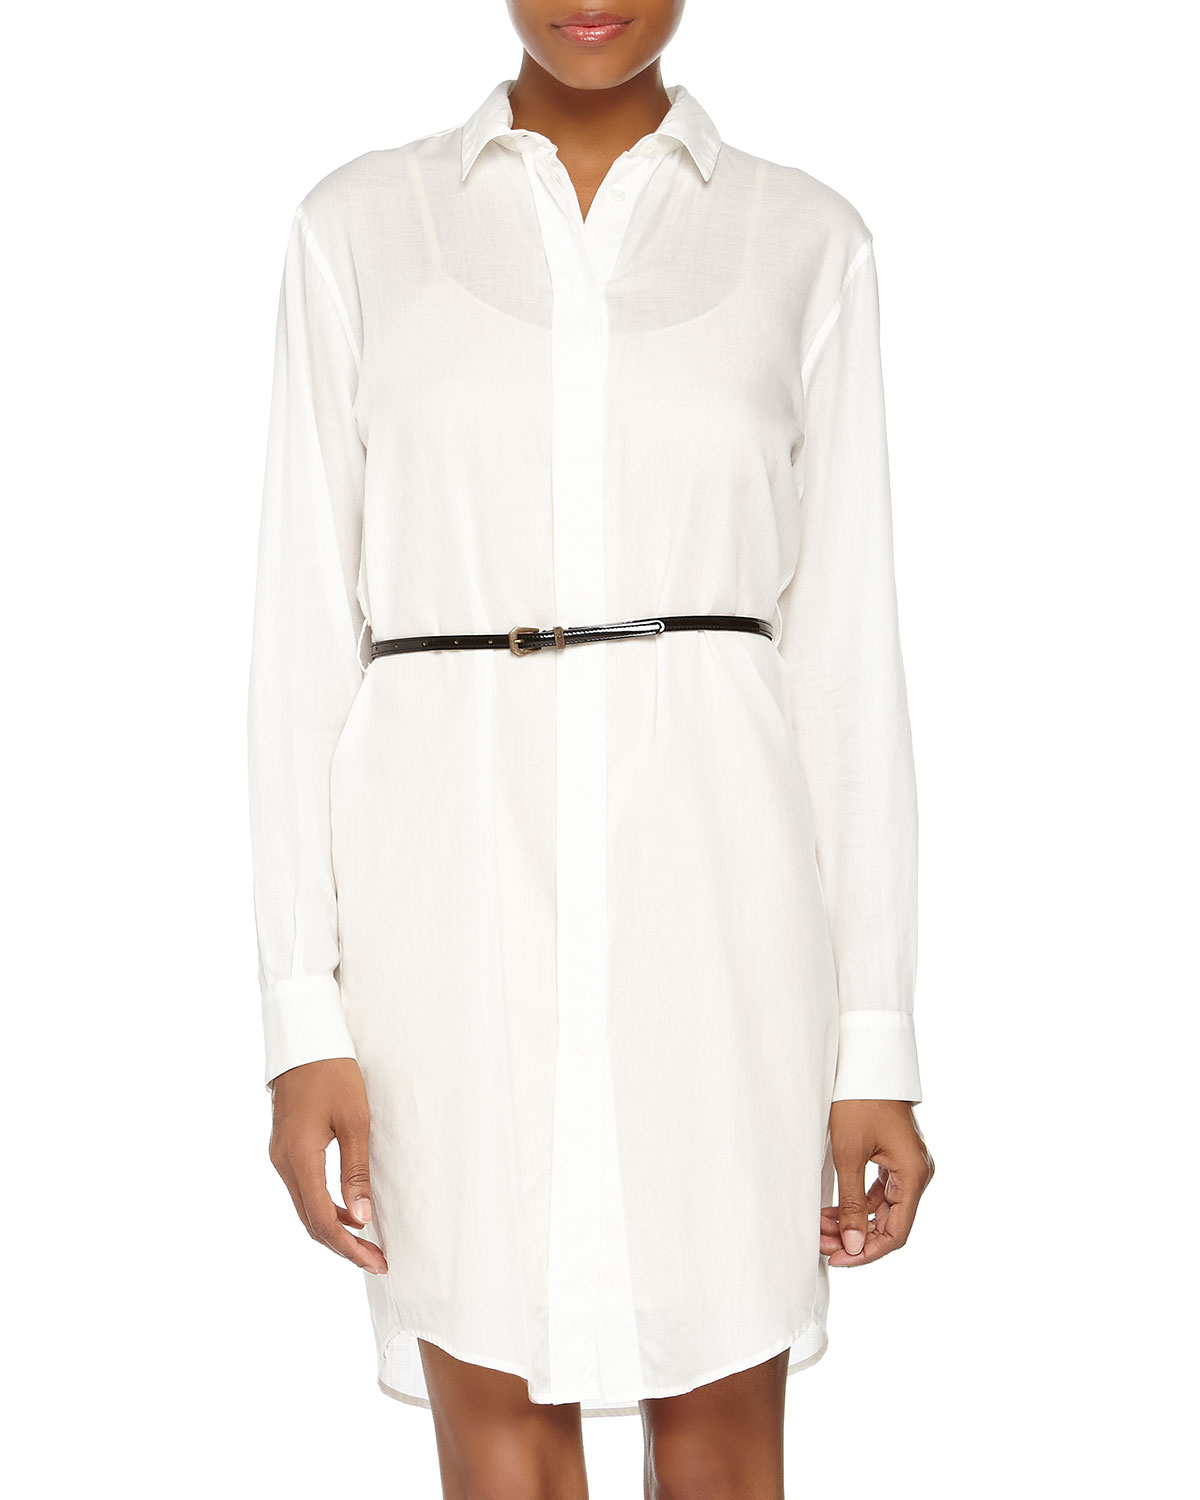 Lyst Mcq Button Front Long Sleeve Chiffon Shirt Dress White 48 In